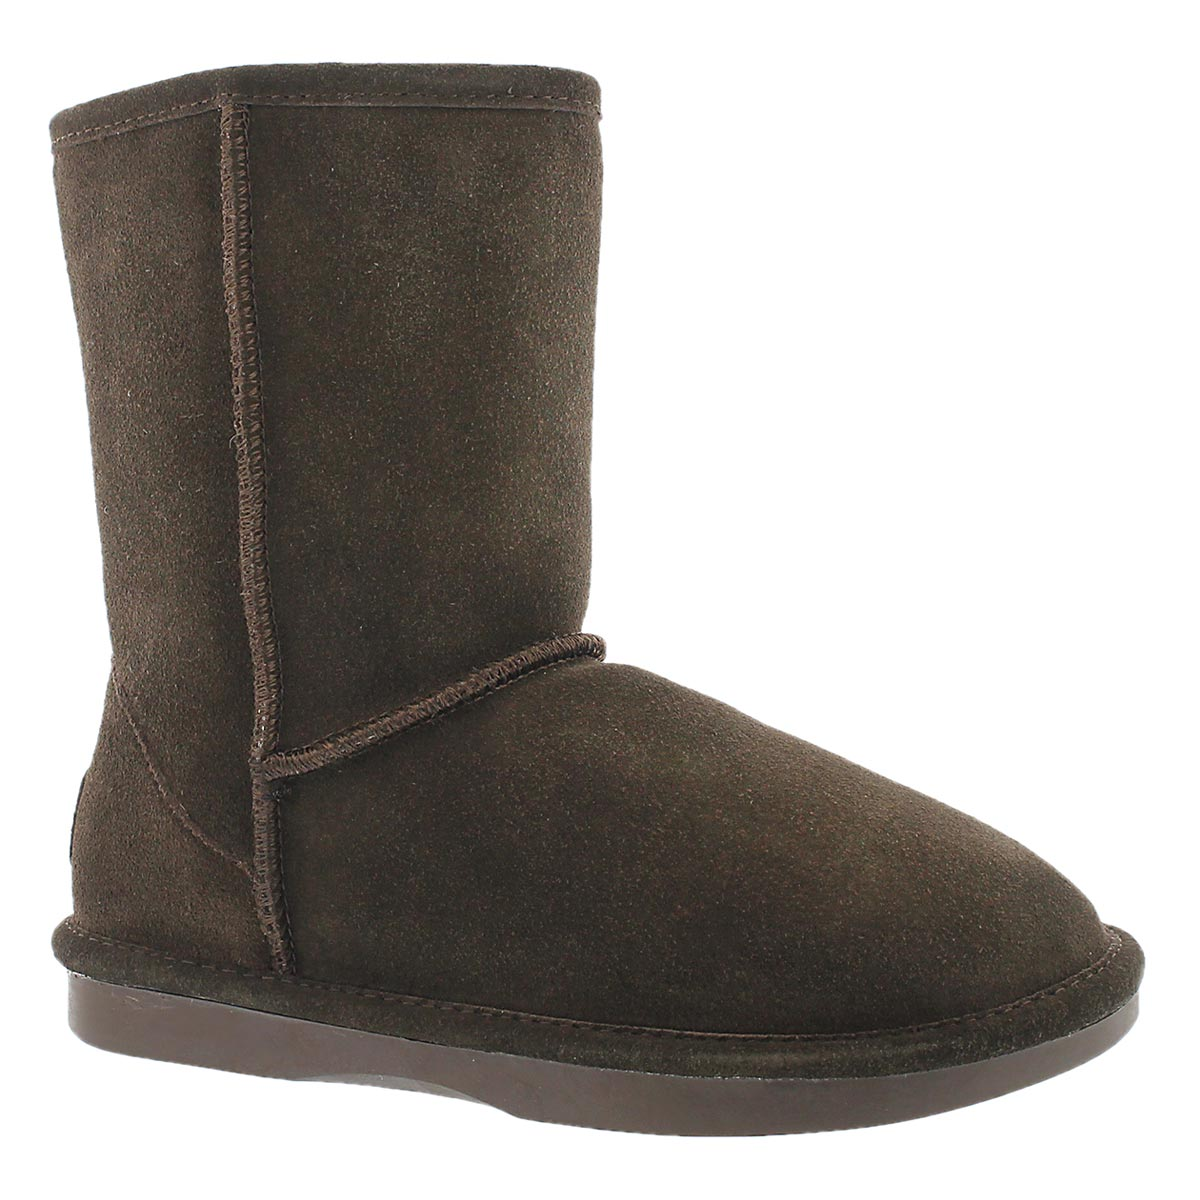 Women's SMOCS 5 chocolate mid suede boots